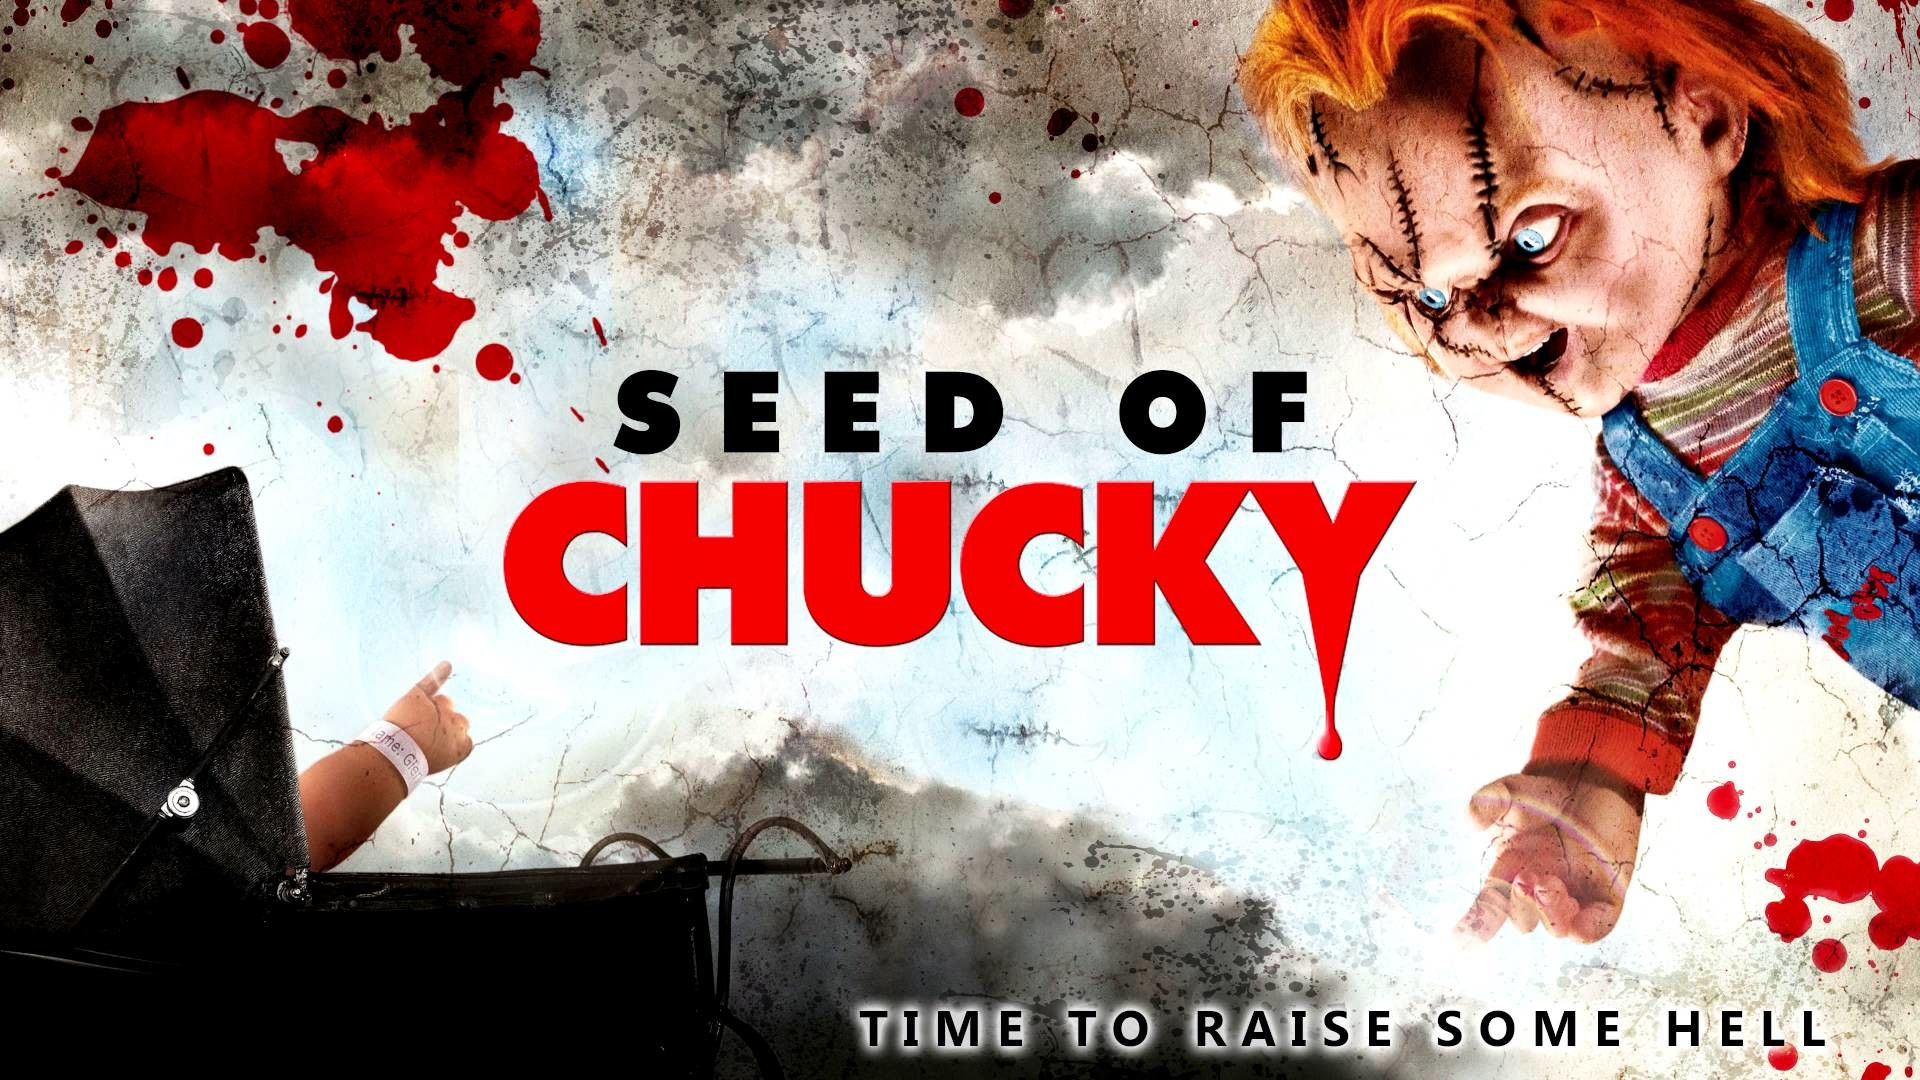 Seed of chucky wallpaper 83 images - Seed of chucky wallpaper ...